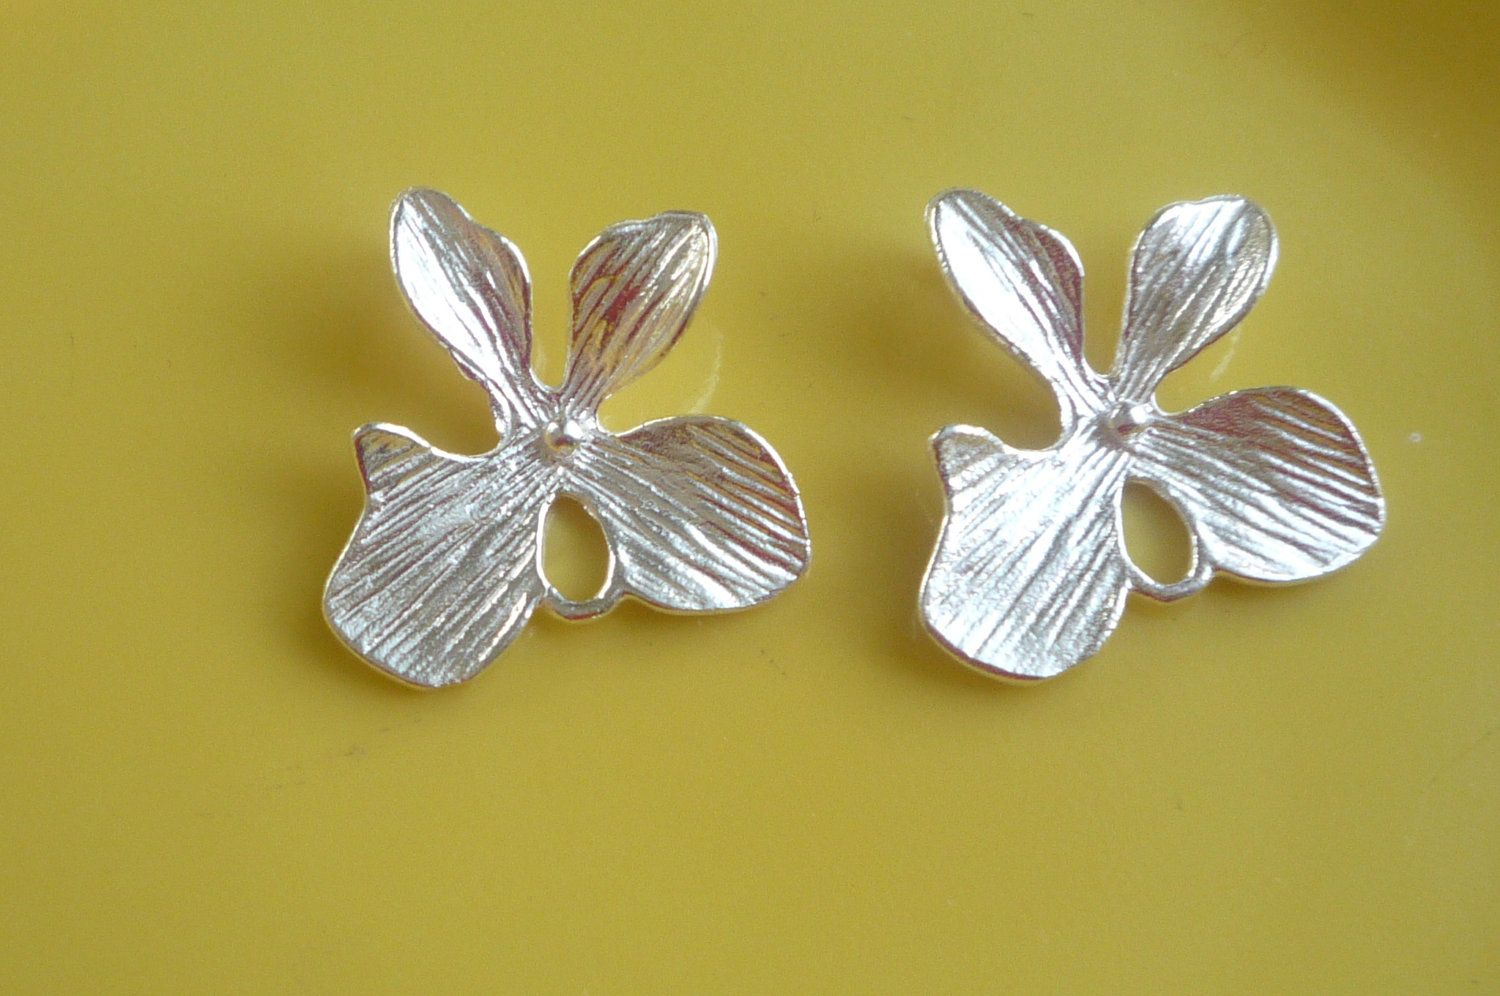 2 pcs Sterling silver  orchid flower connector, link, spacer (15x15mm),flower connector. $8.50, via Etsy.